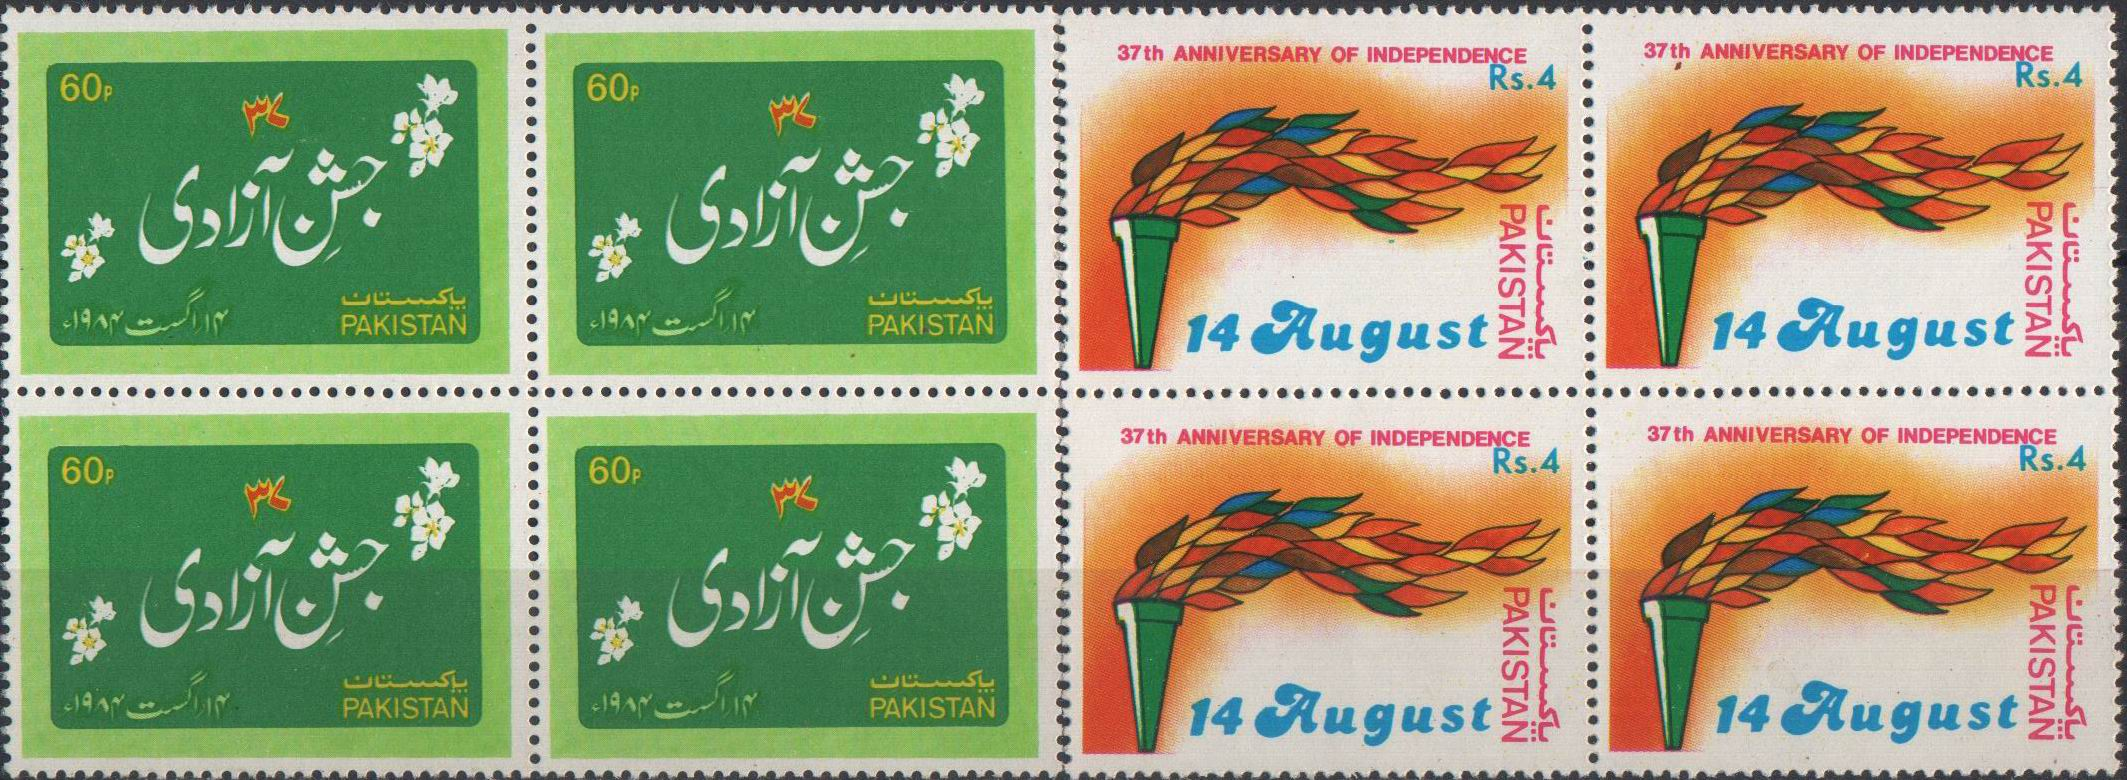 Pakistan Stamps 1984 Independence Day